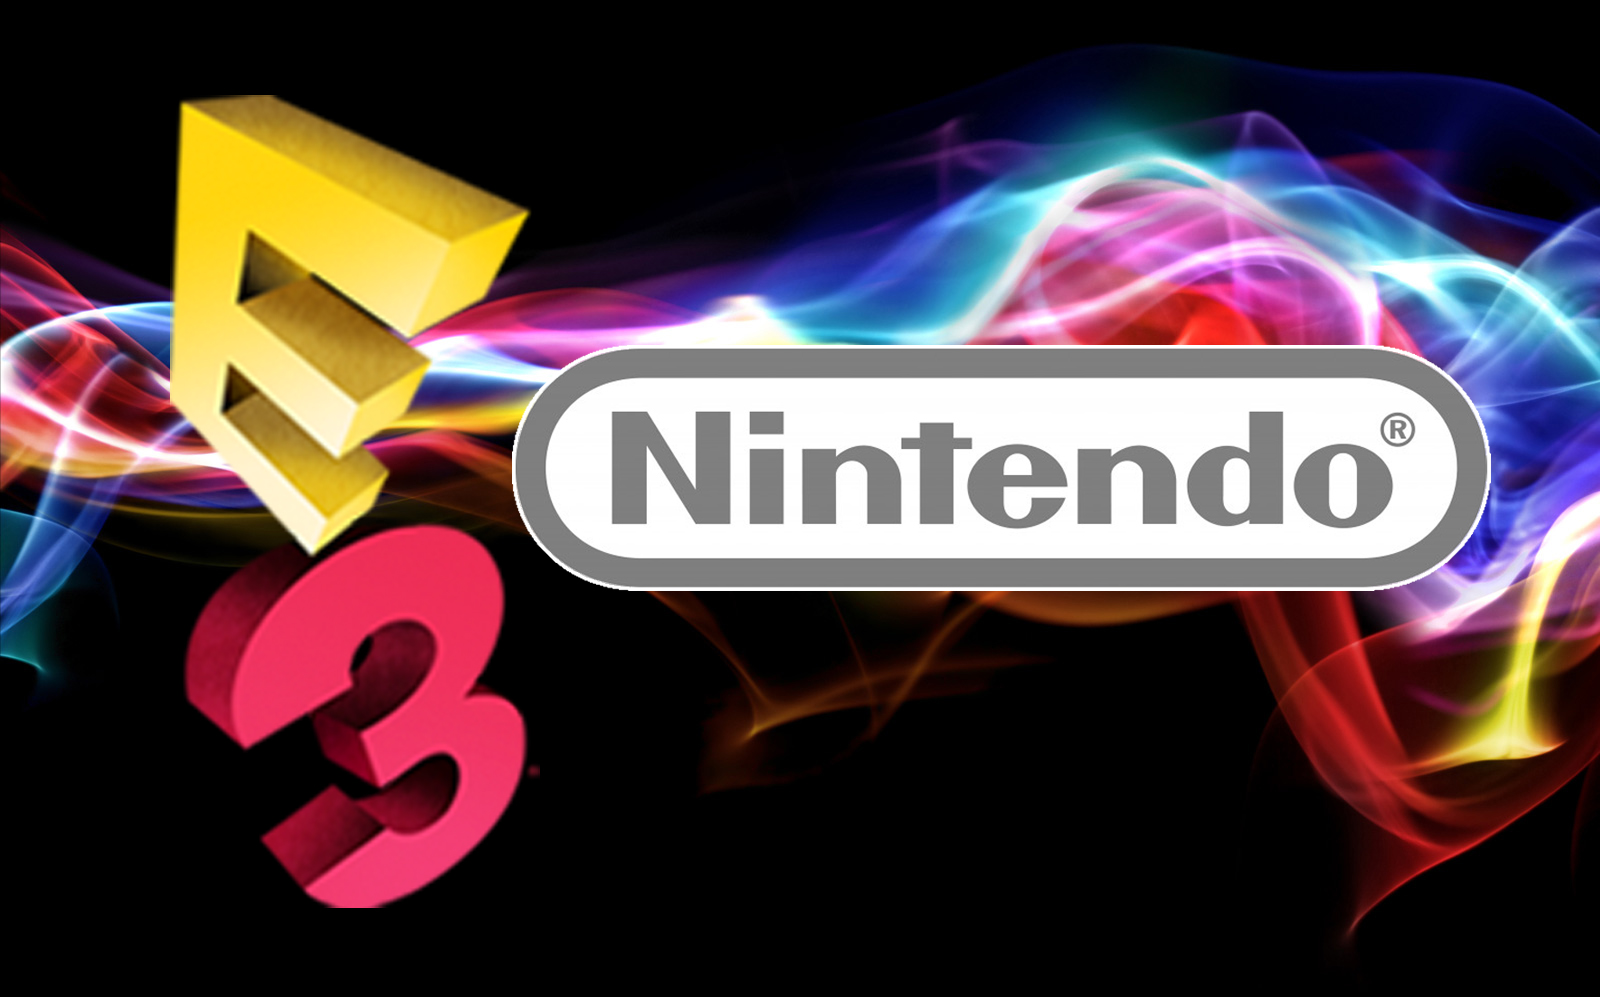 Nintendo Direct E3 2013 Liveblog